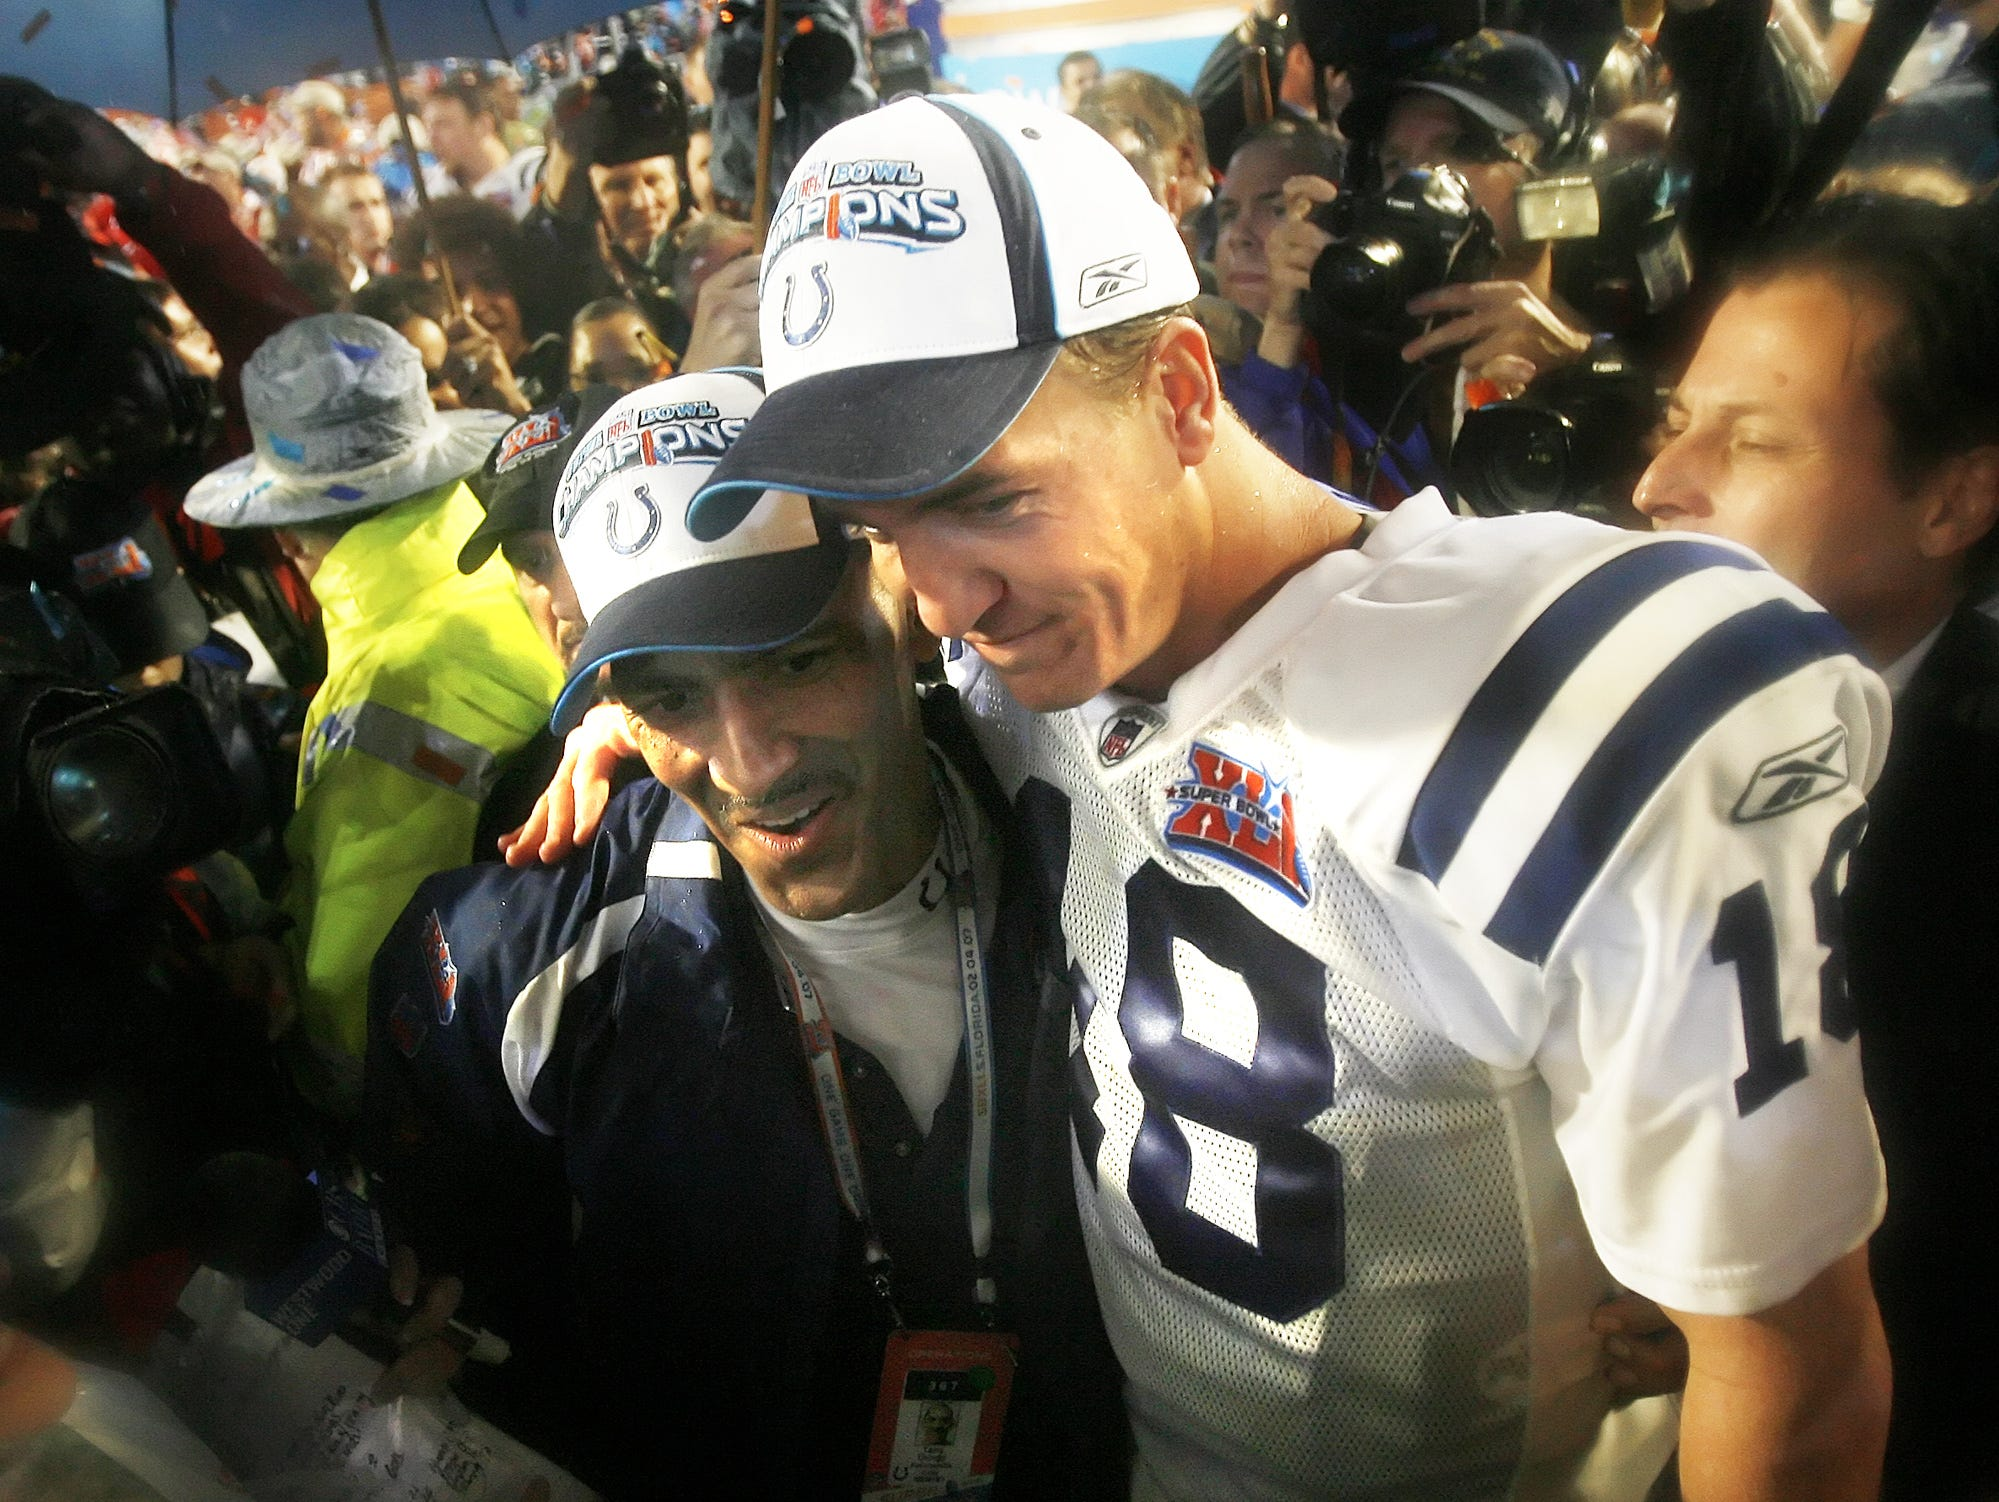 Colts head coach Tony Dungy and Peyton Manning celebrate together following their 29-17 win over the Chicago Bears in Super Bowl XLI on Feb 4, 2007.